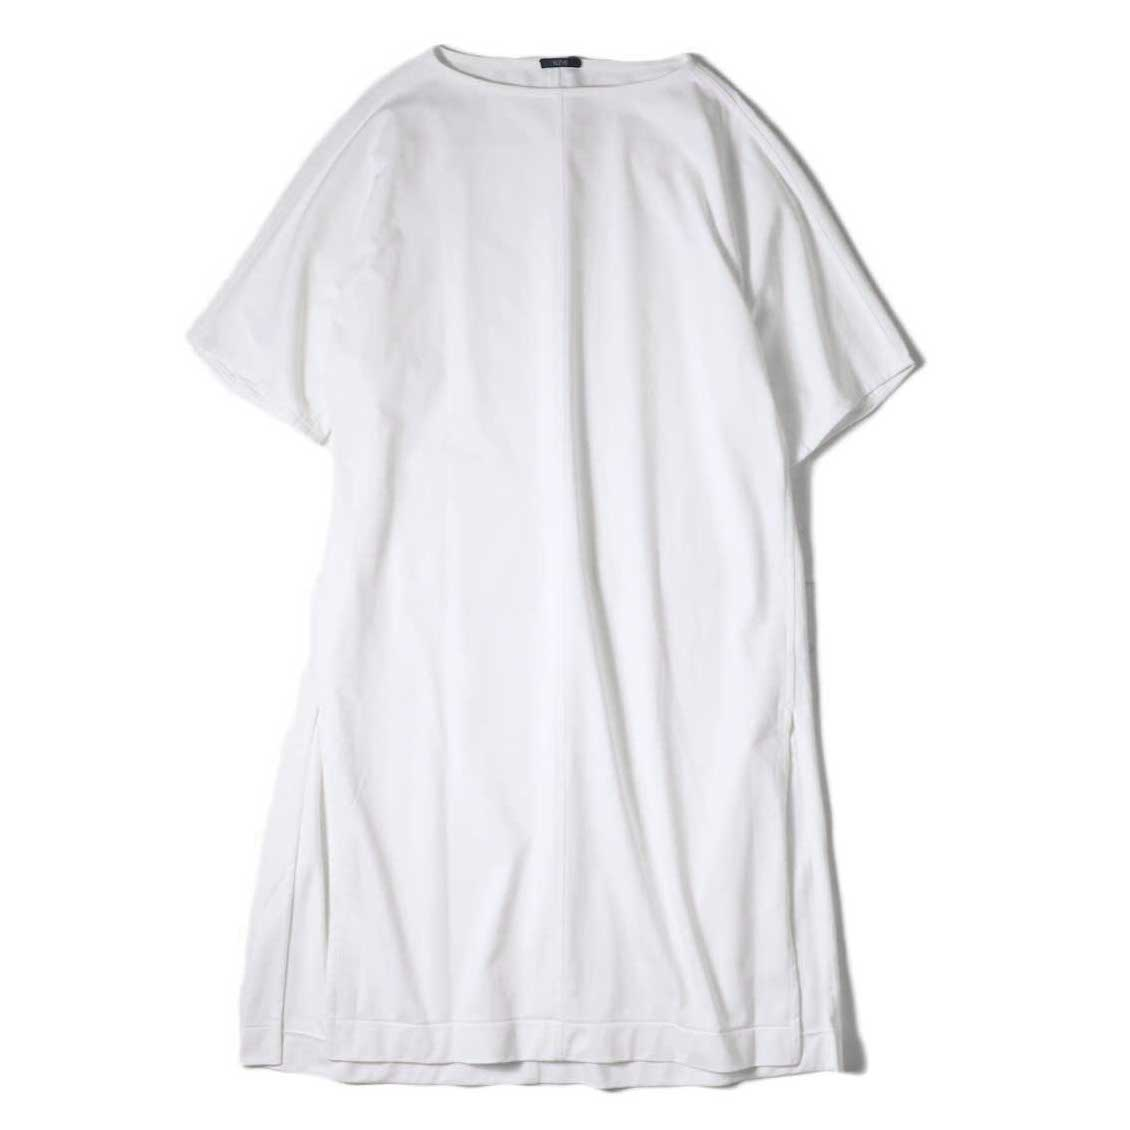 YLEVE / ORGANIC COTTON HIGH COUNT JERSEY OP (White) 正面